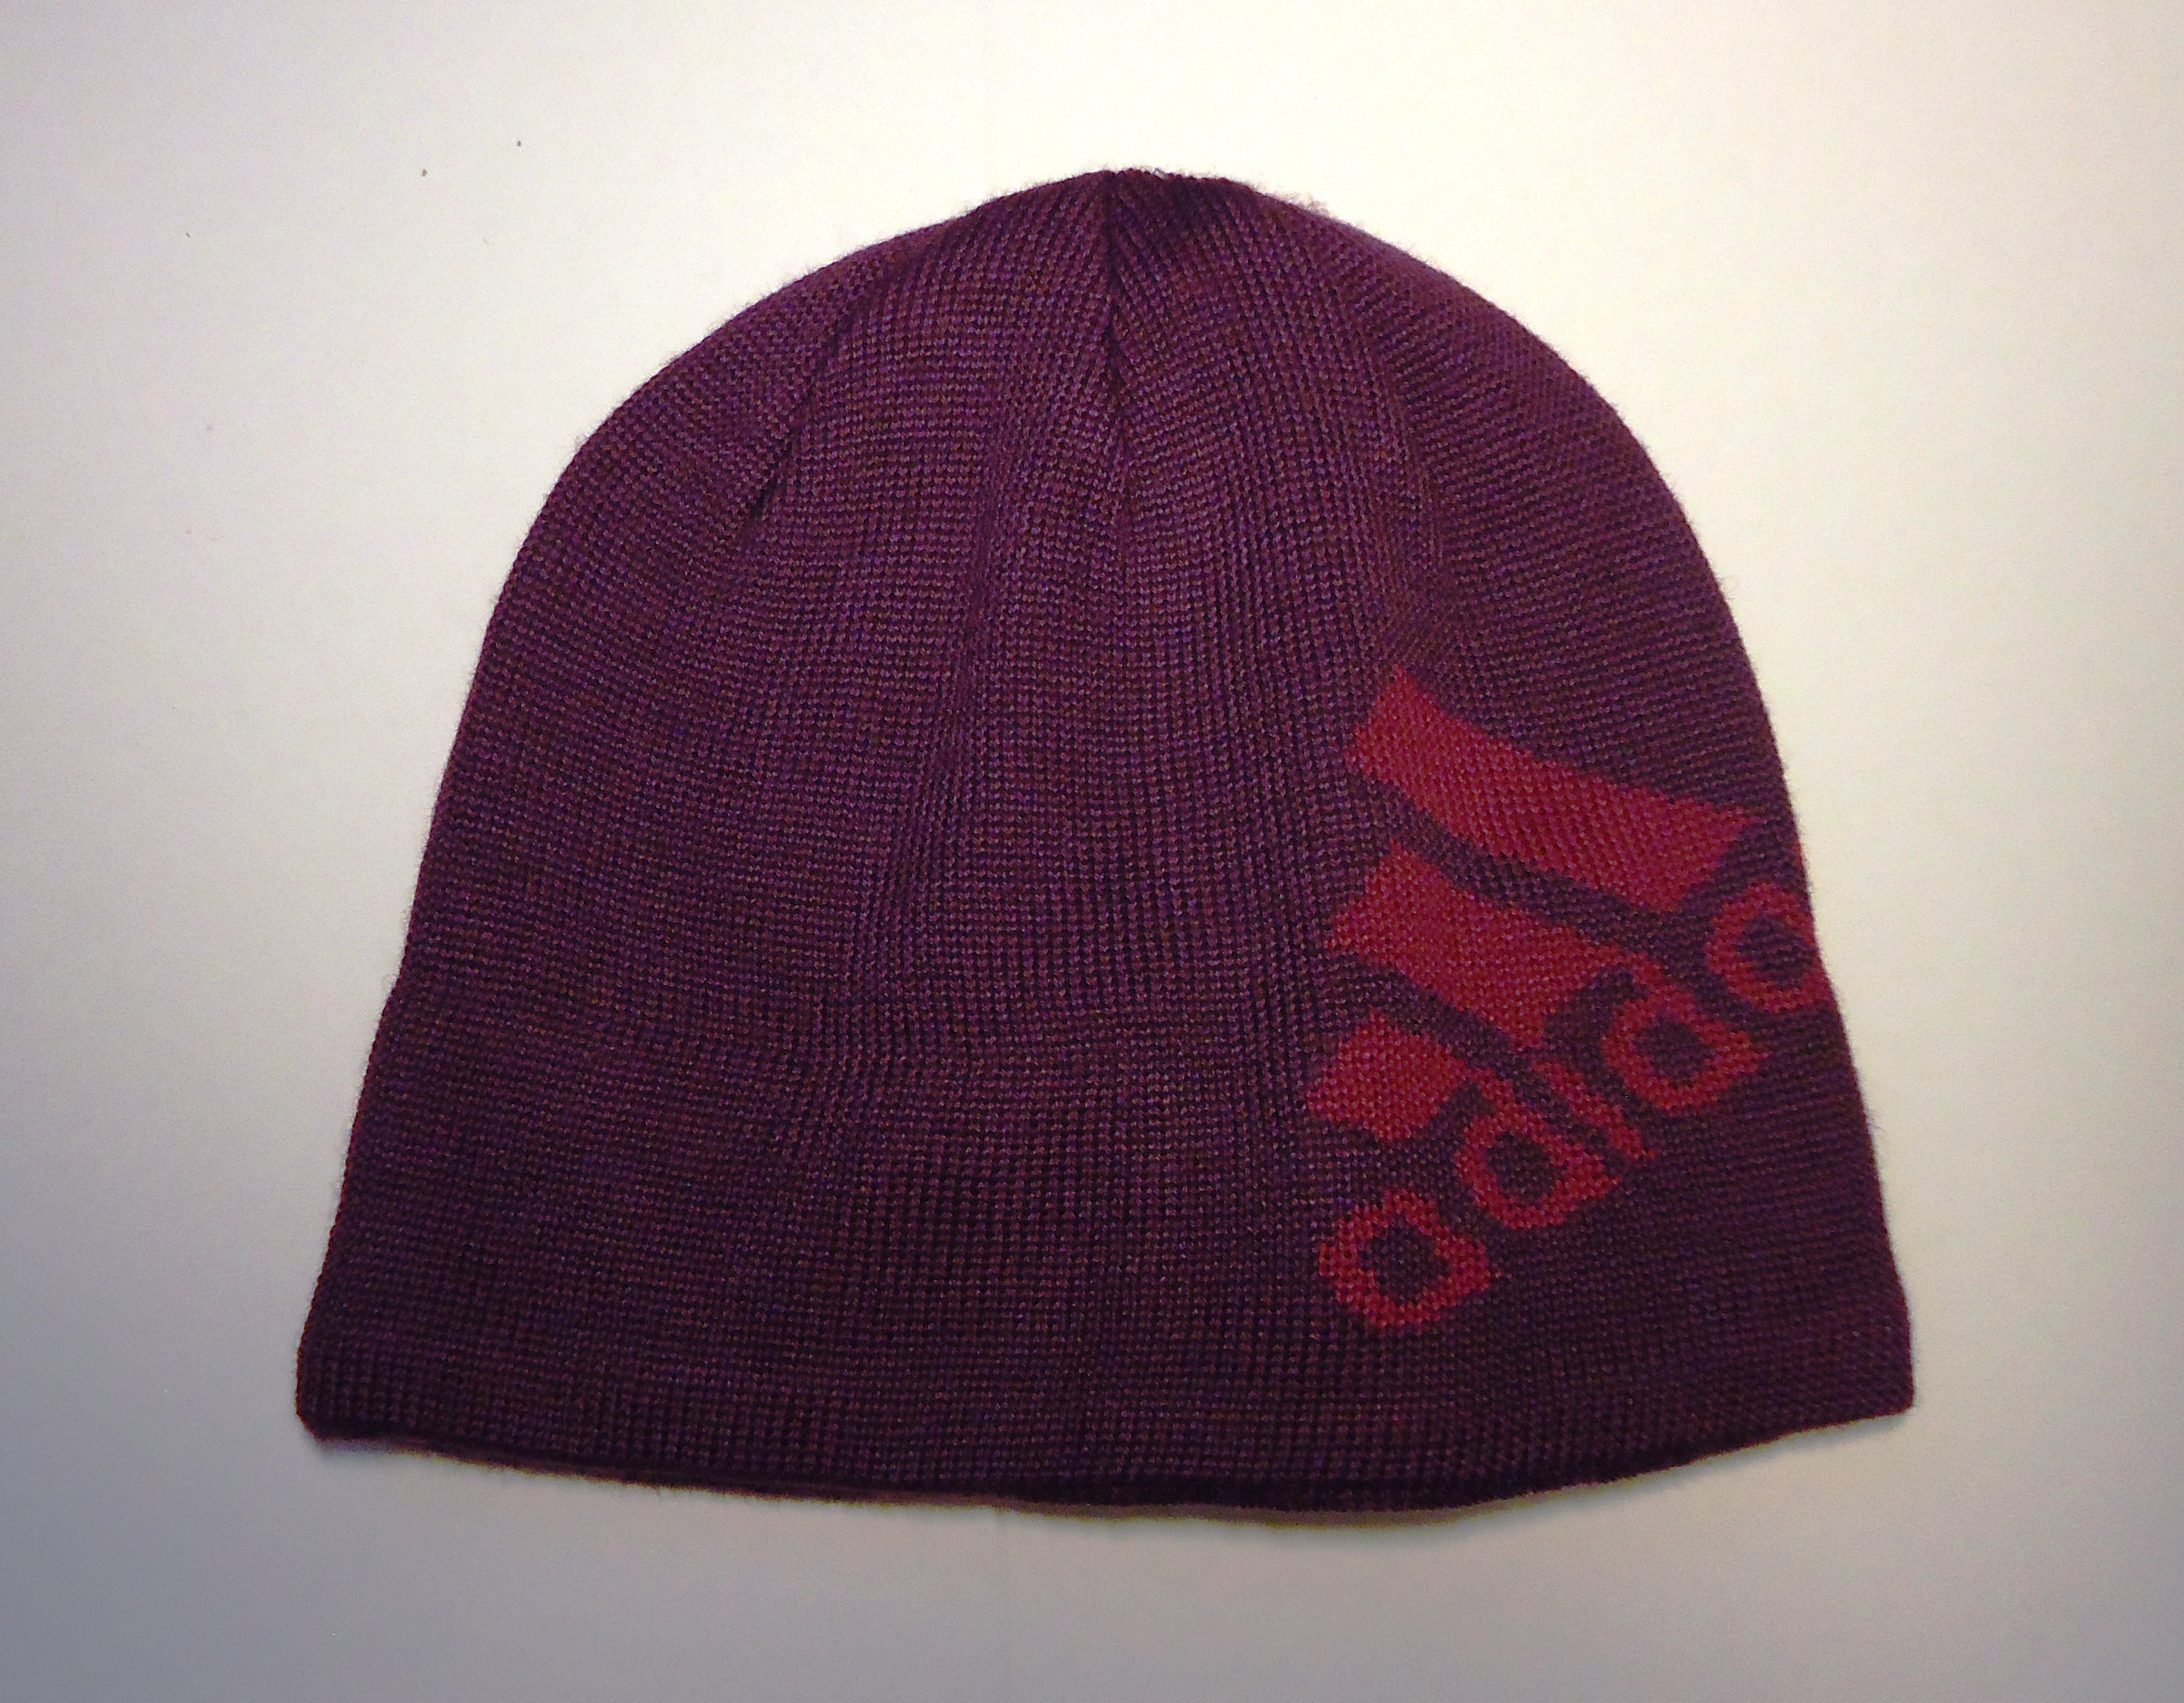 ADIDAS Knit Beanie, purple